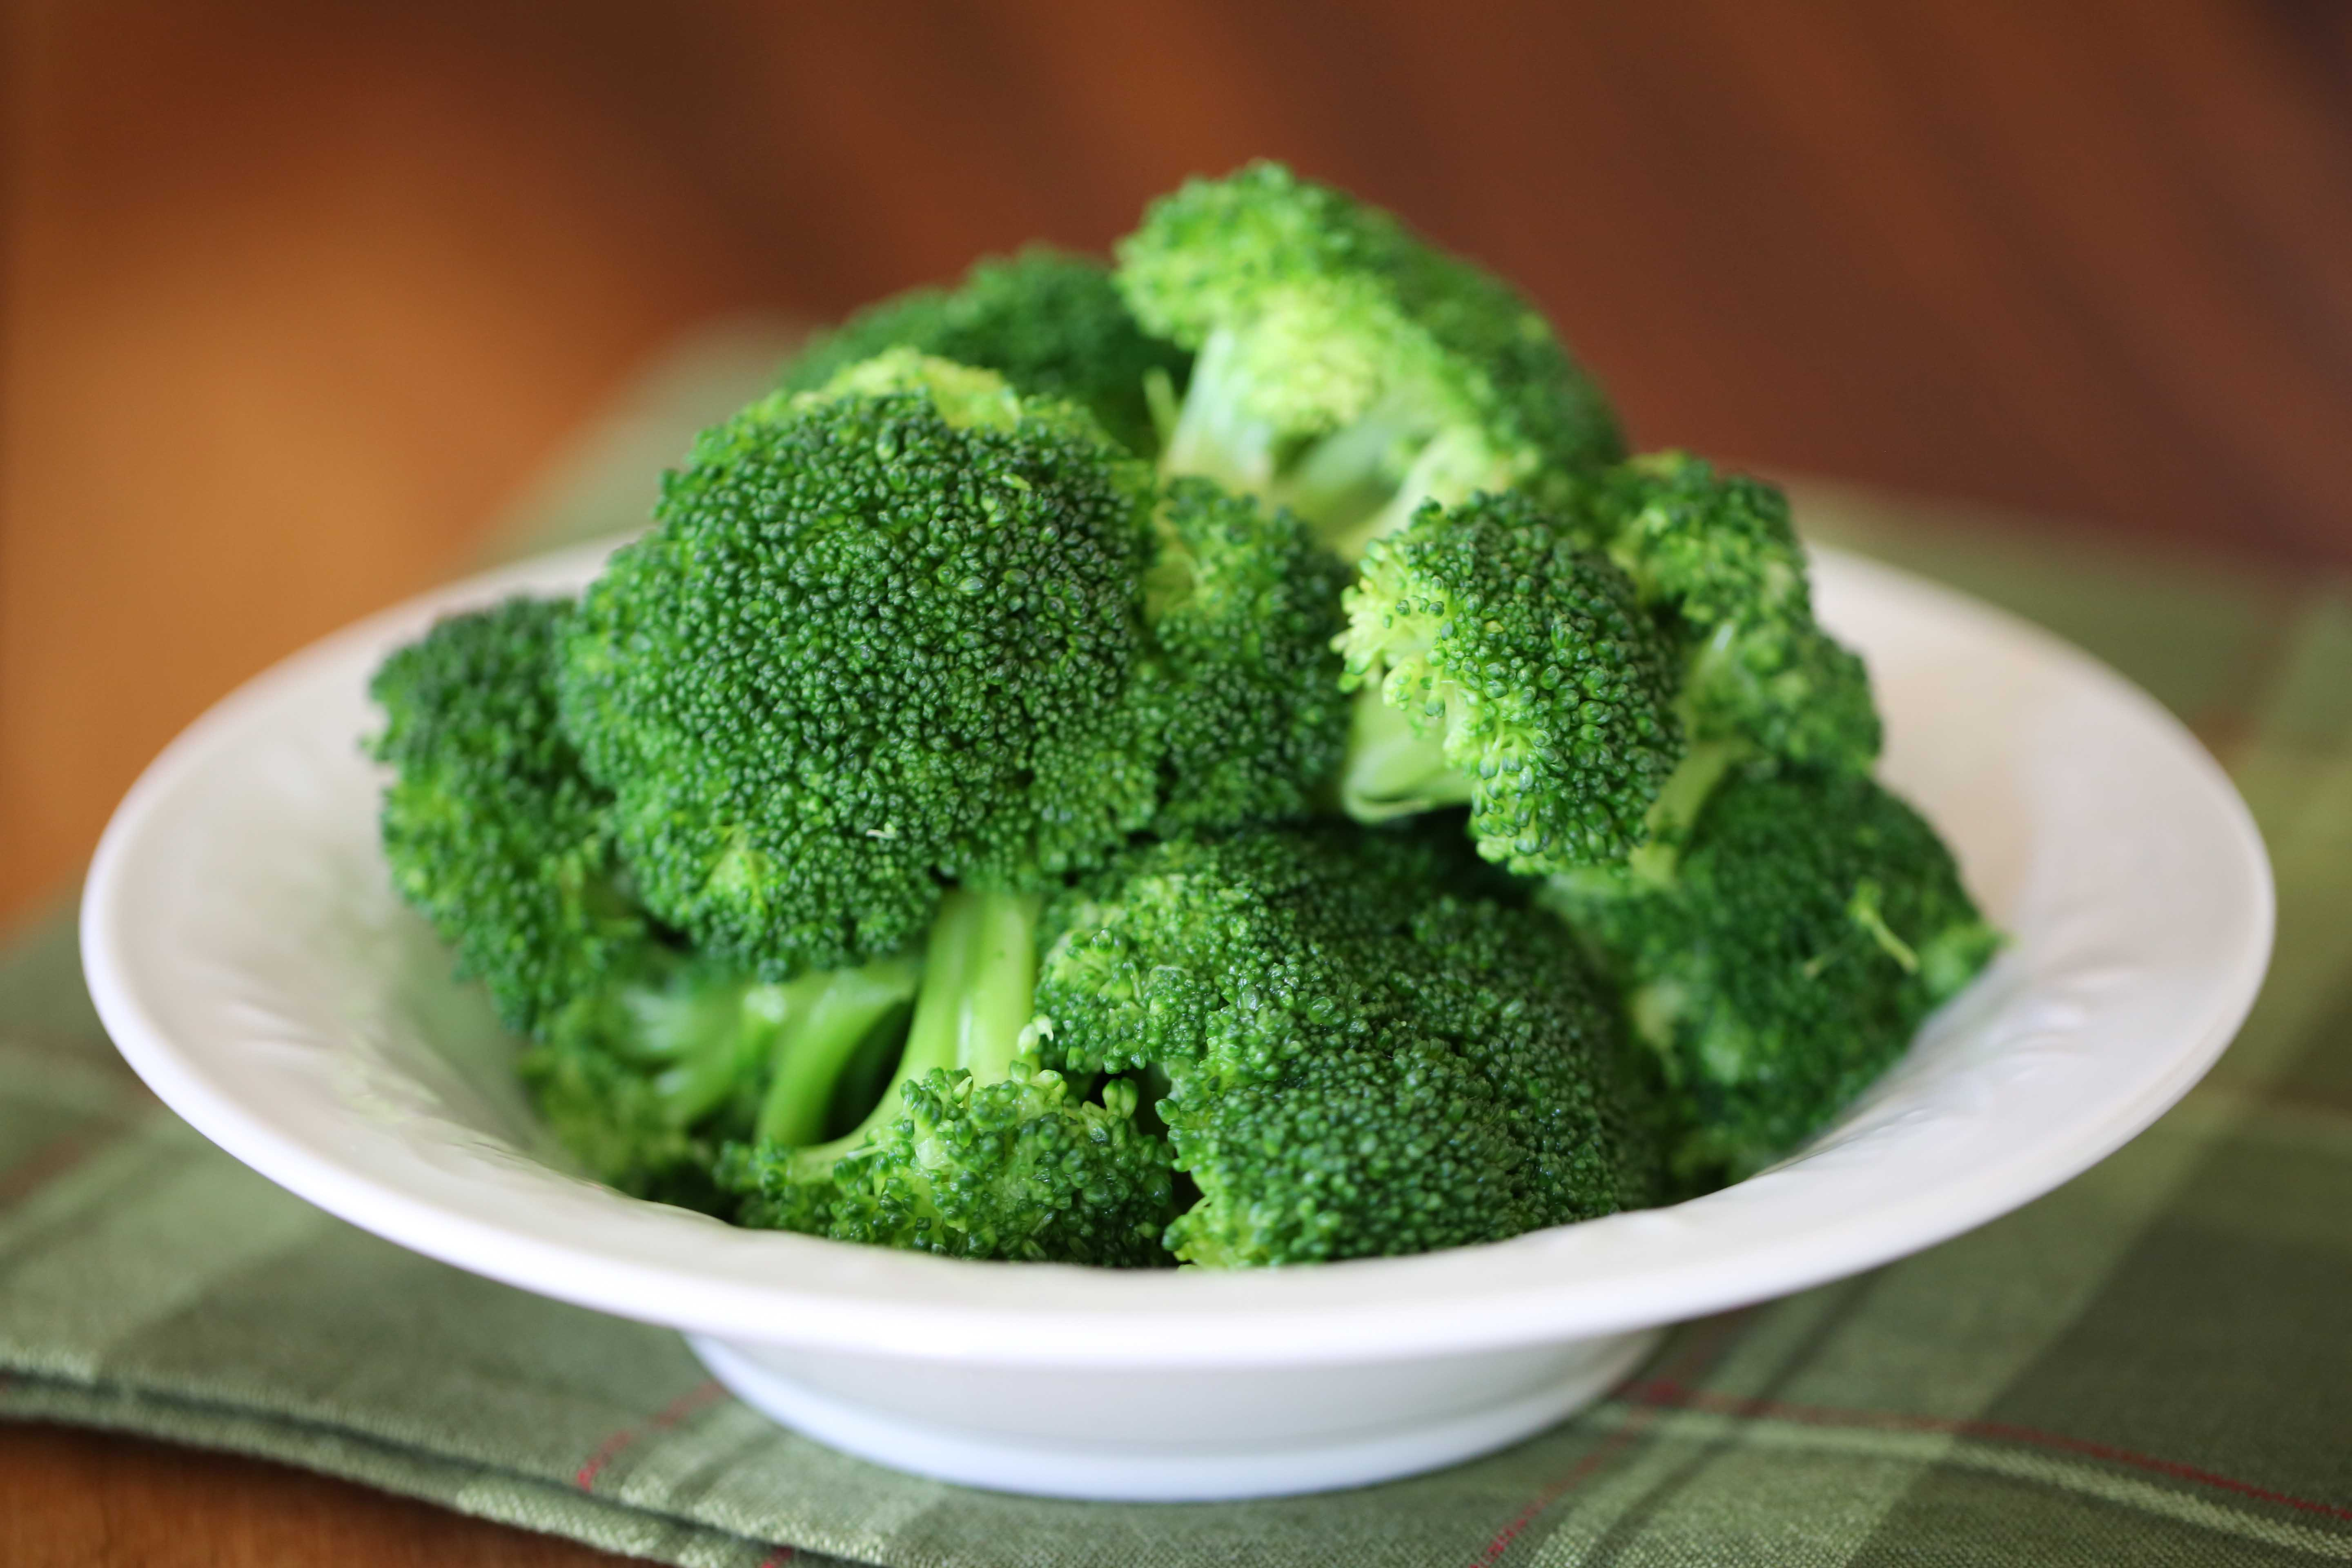 Cooking Broccoli (How to Keep Cooked Broccoli Bright Green)